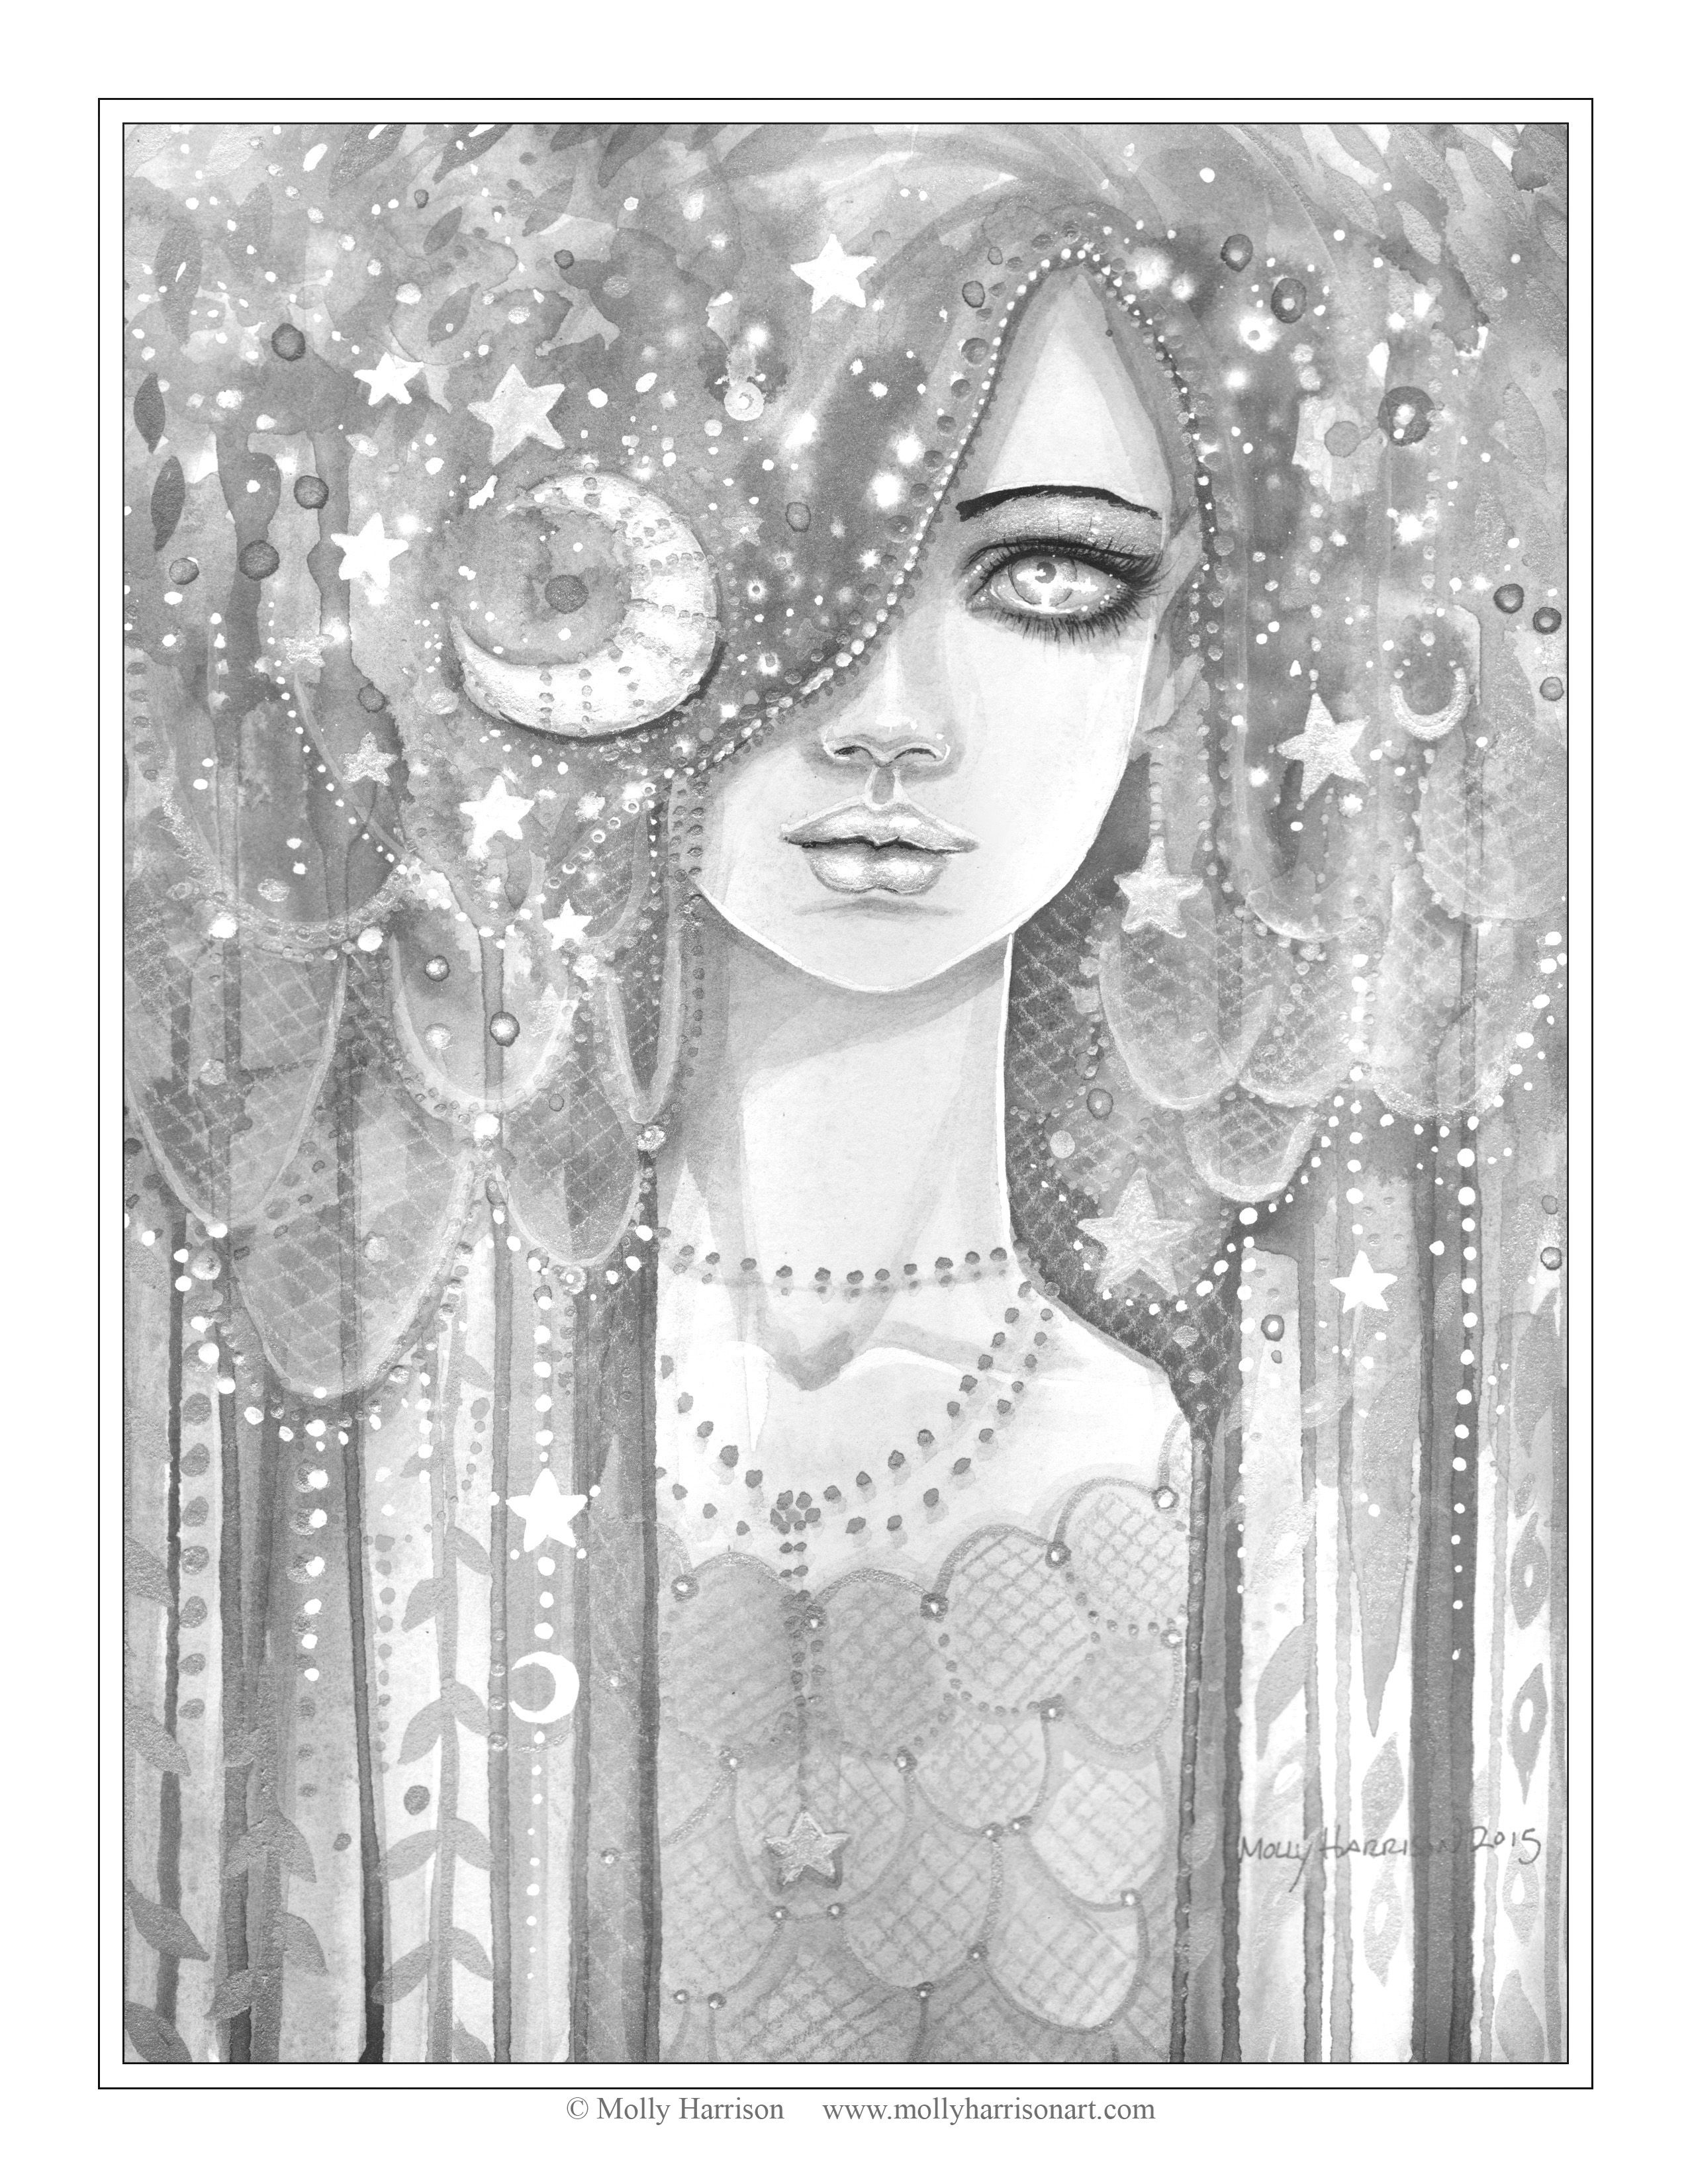 Free Grayscale Coloring Page Galaxy Girl By Molly Harrison Fantasy Art Grayscale Coloring Designs Coloring Books Coloring Pages